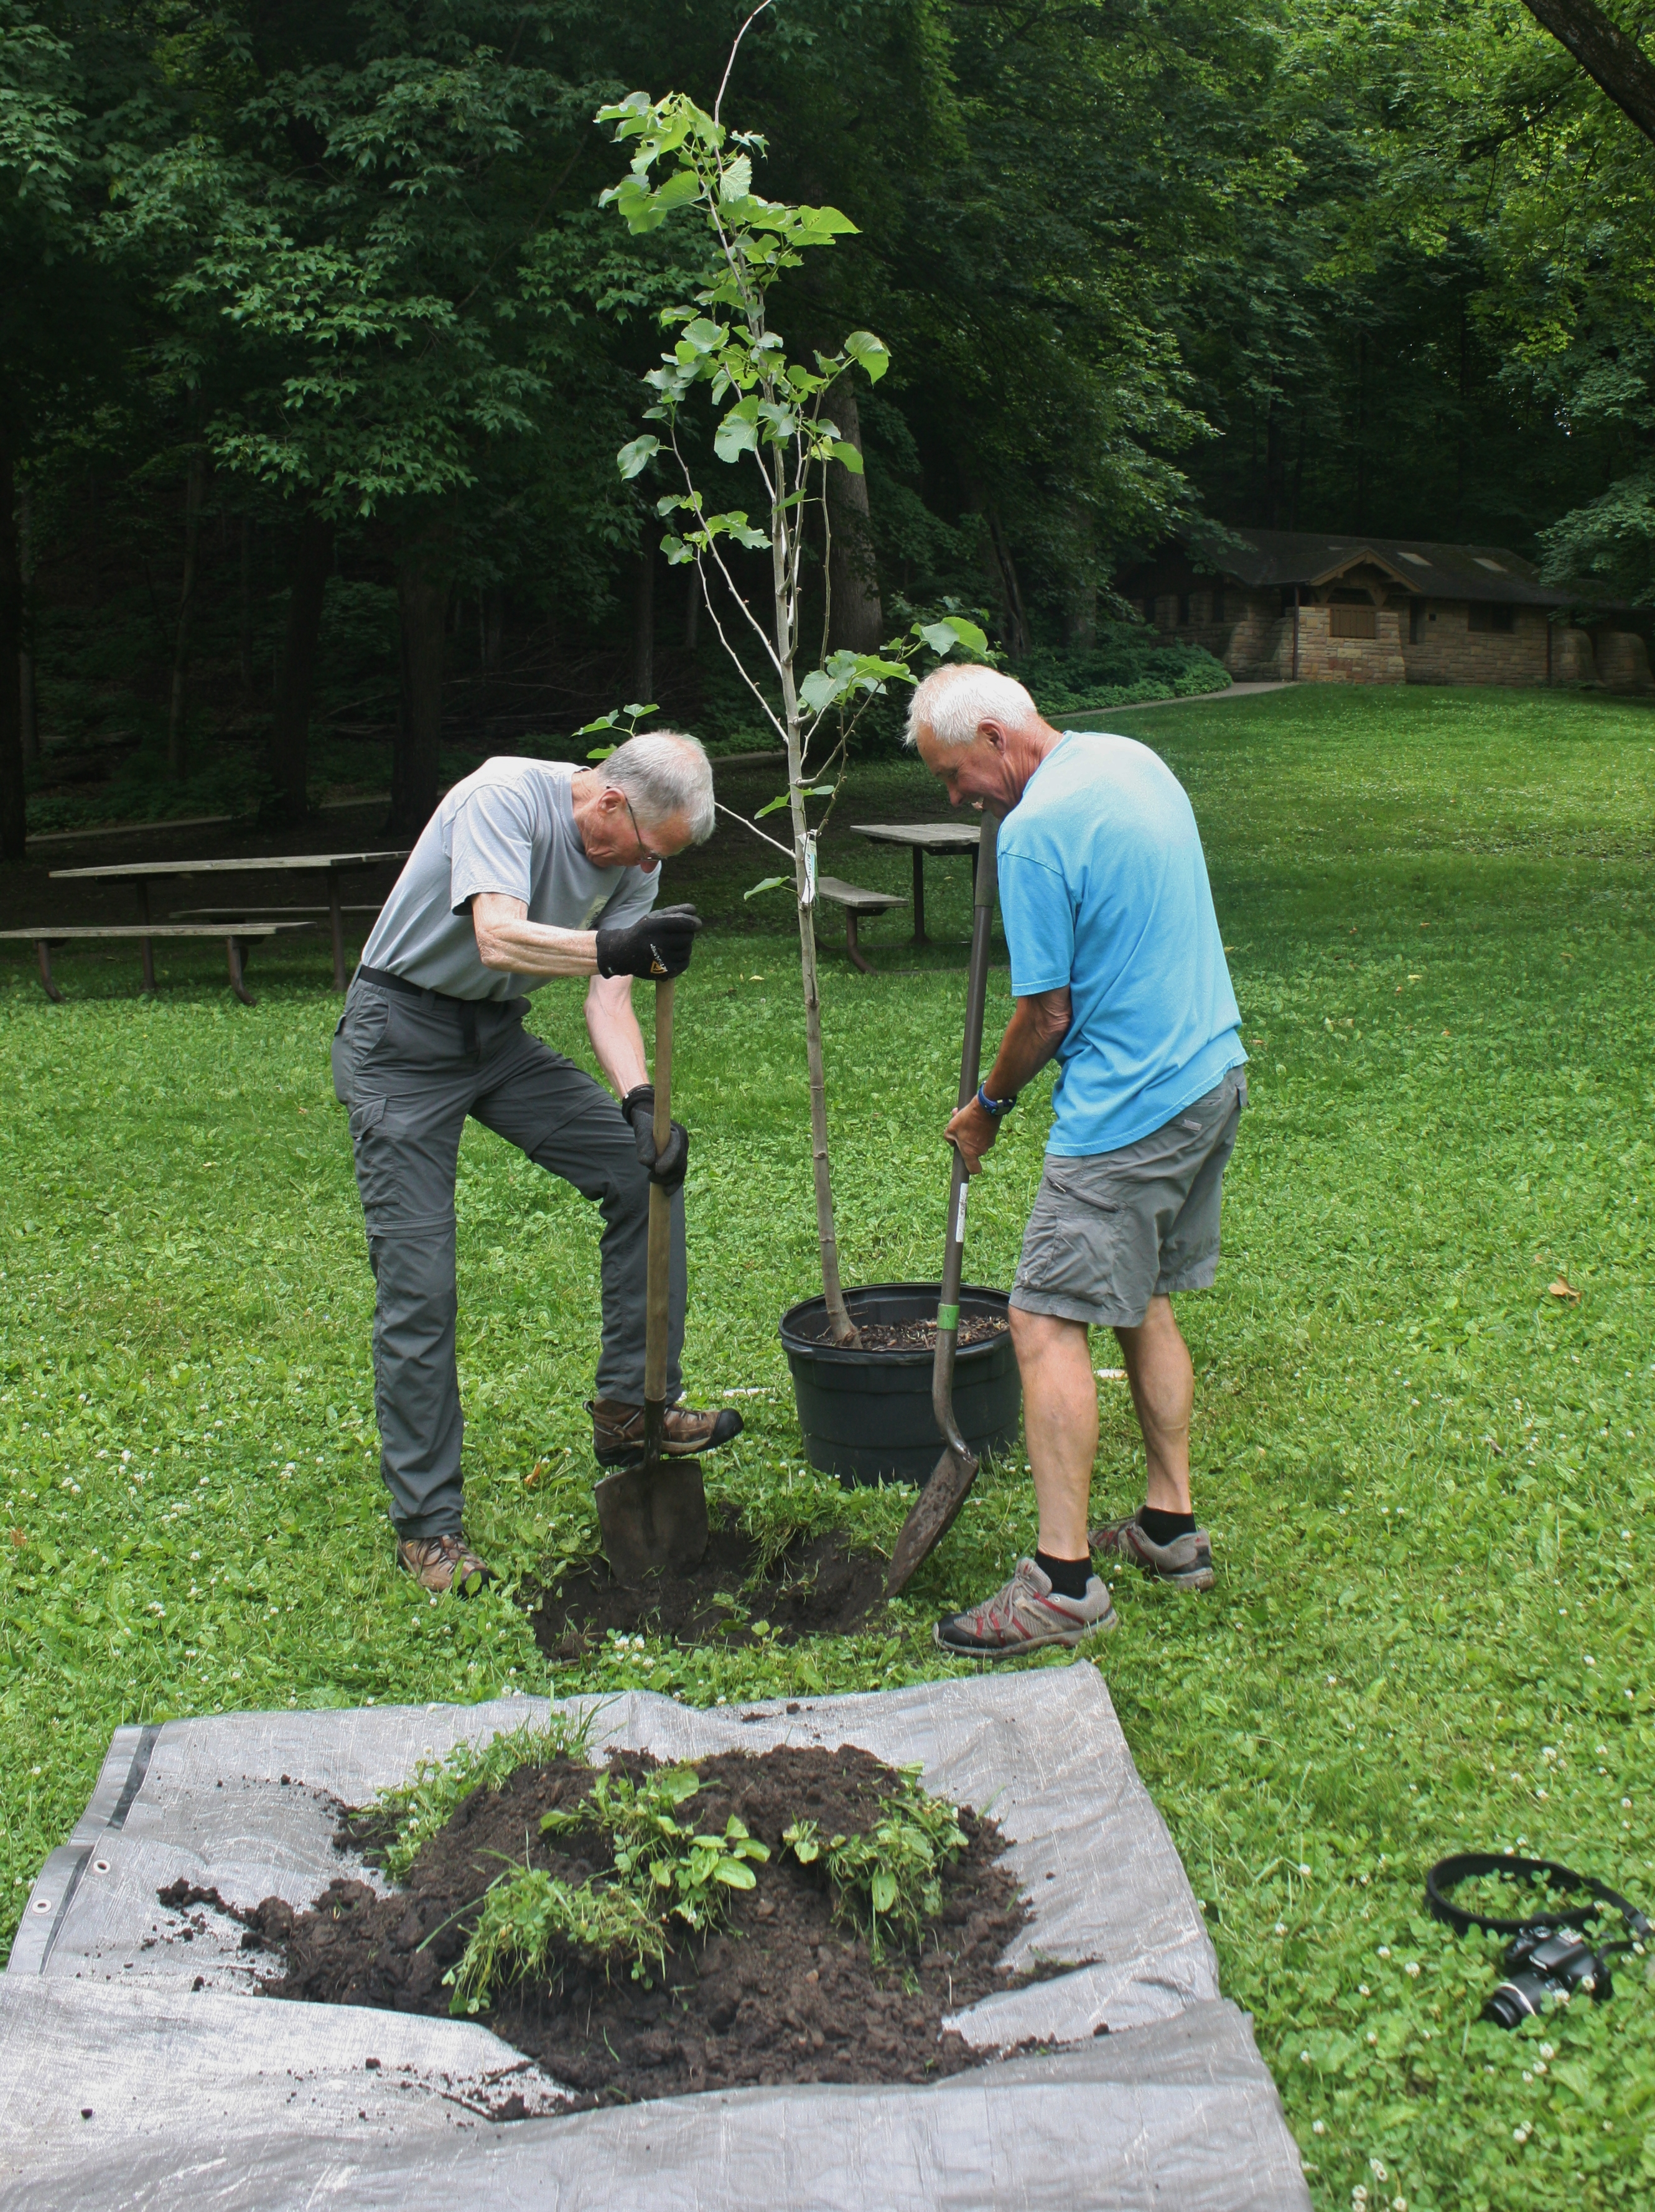 volunteers dig a hole to plant a tree